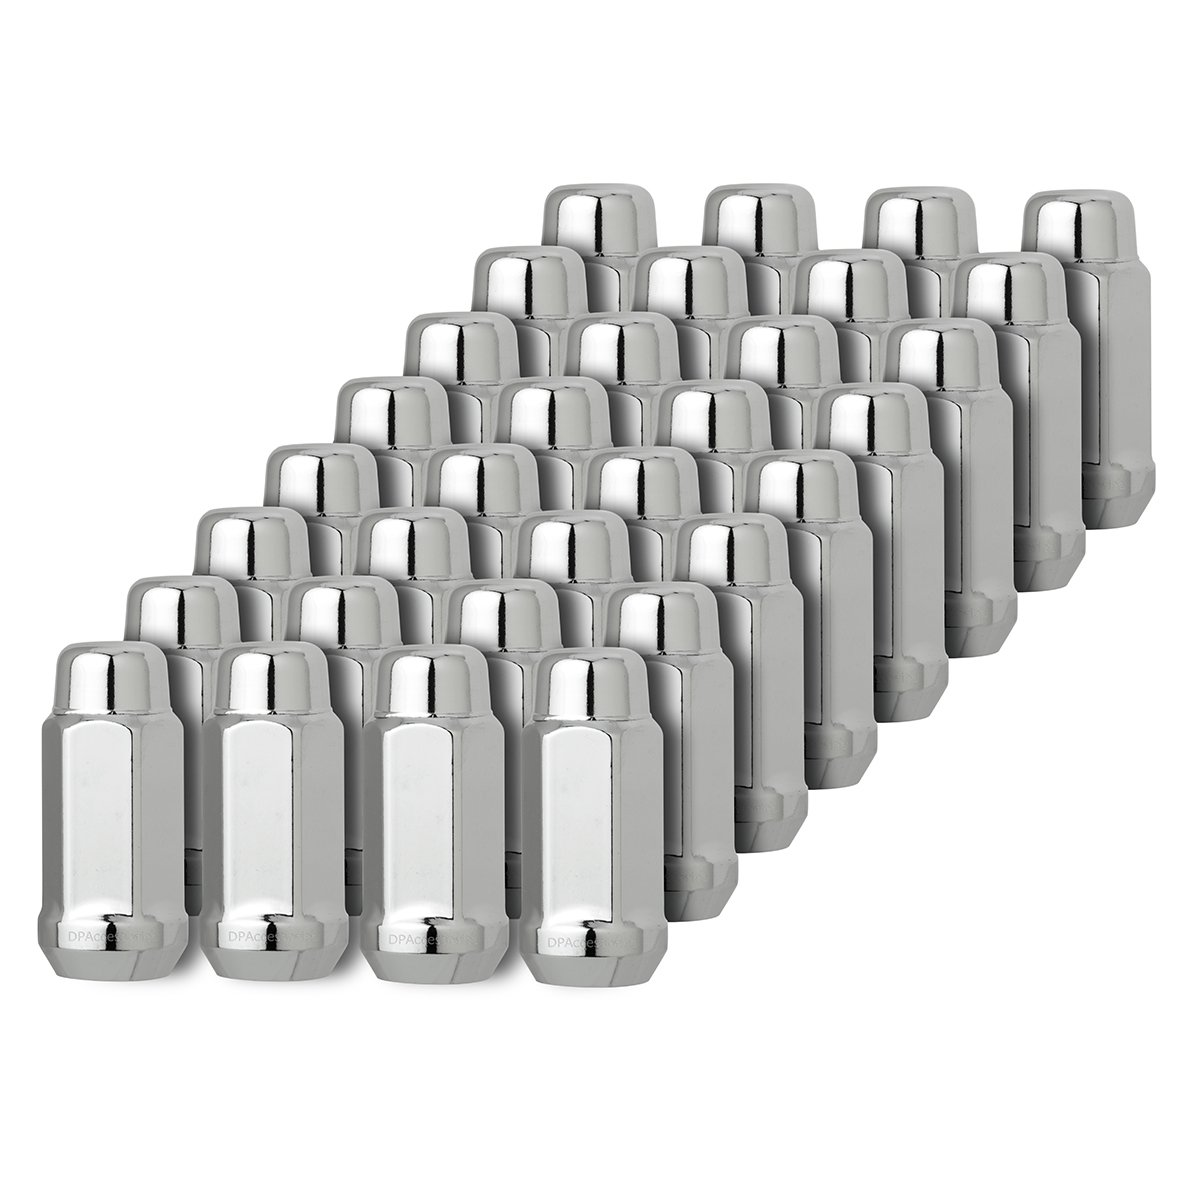 DPAccessories D3418-2305/32 32 Chrome 14x1.5 Closed End XL Bulge Acorn Lug Nuts - Cone Seat - 21mm Hex Wheel Lug Nut